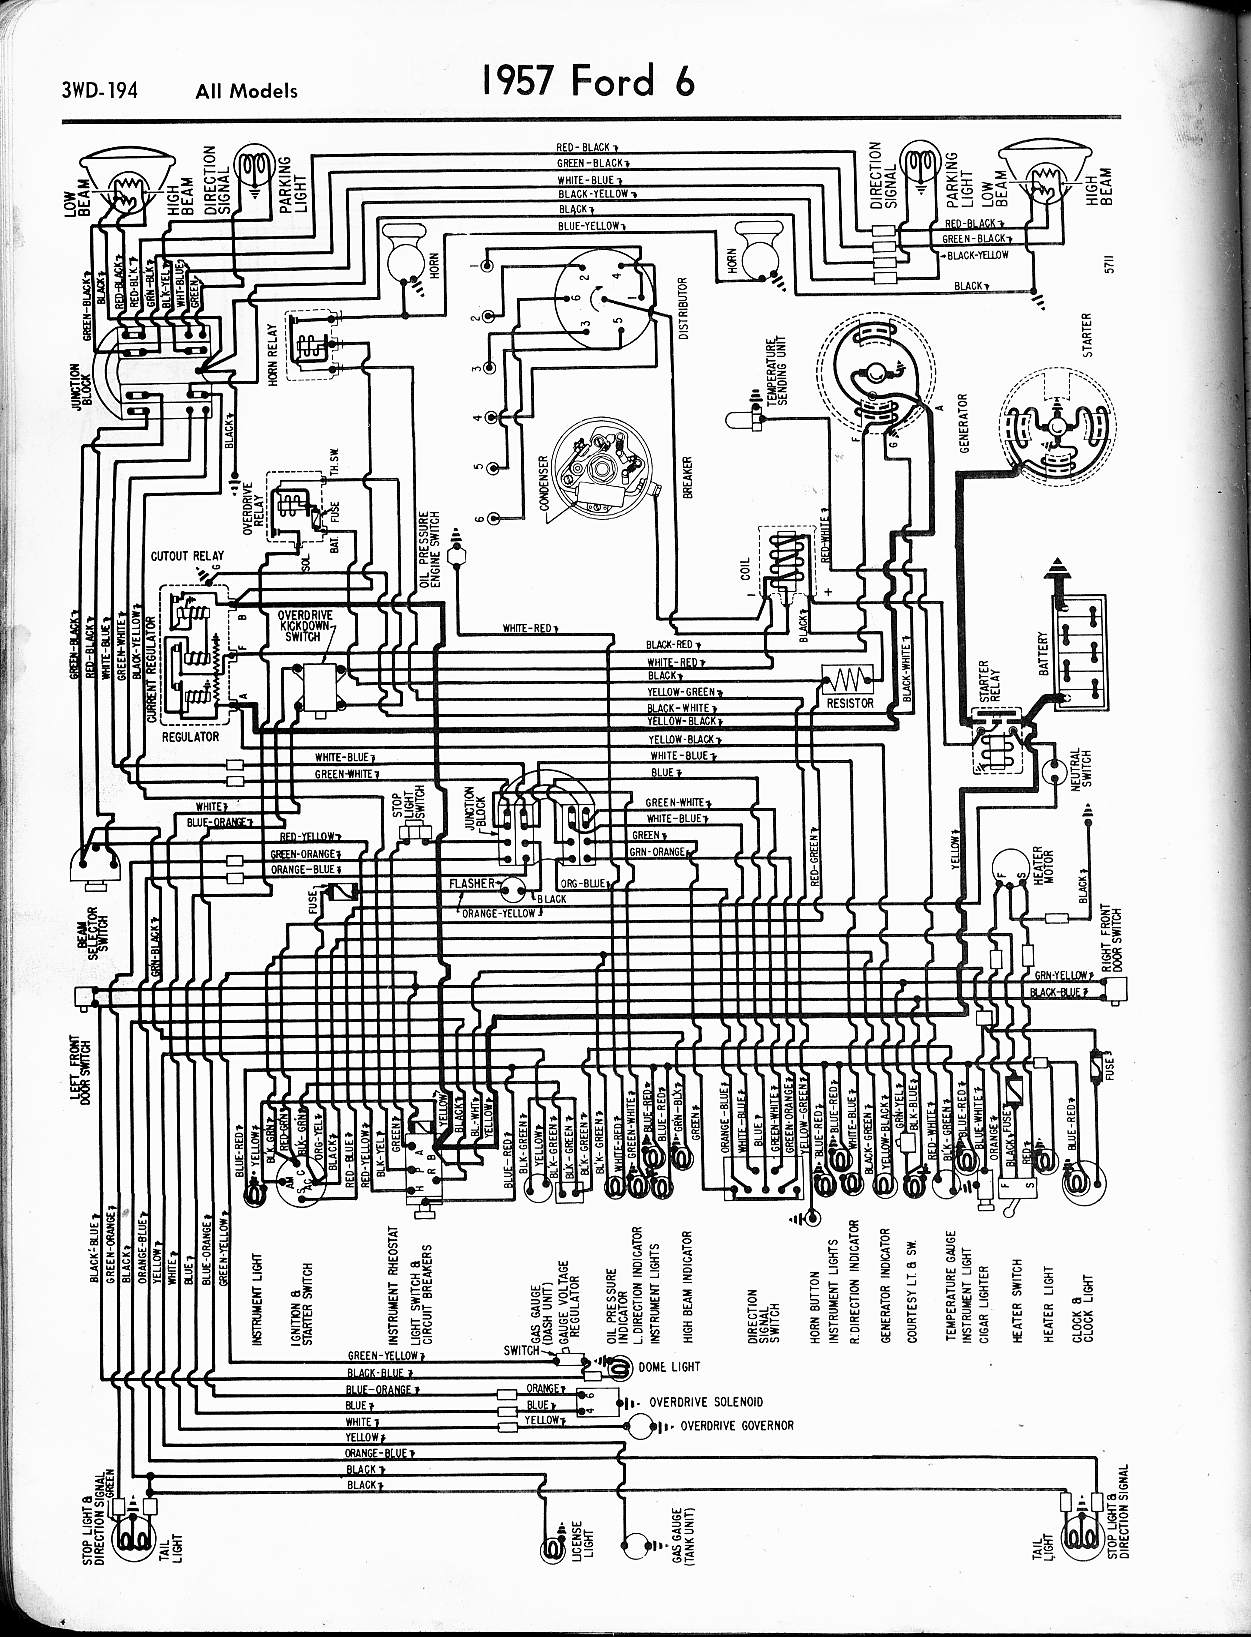 1957 Ford Wiring Schematic Diagram Schematics For Chevy Truck 57 65 Diagrams Chevrolet